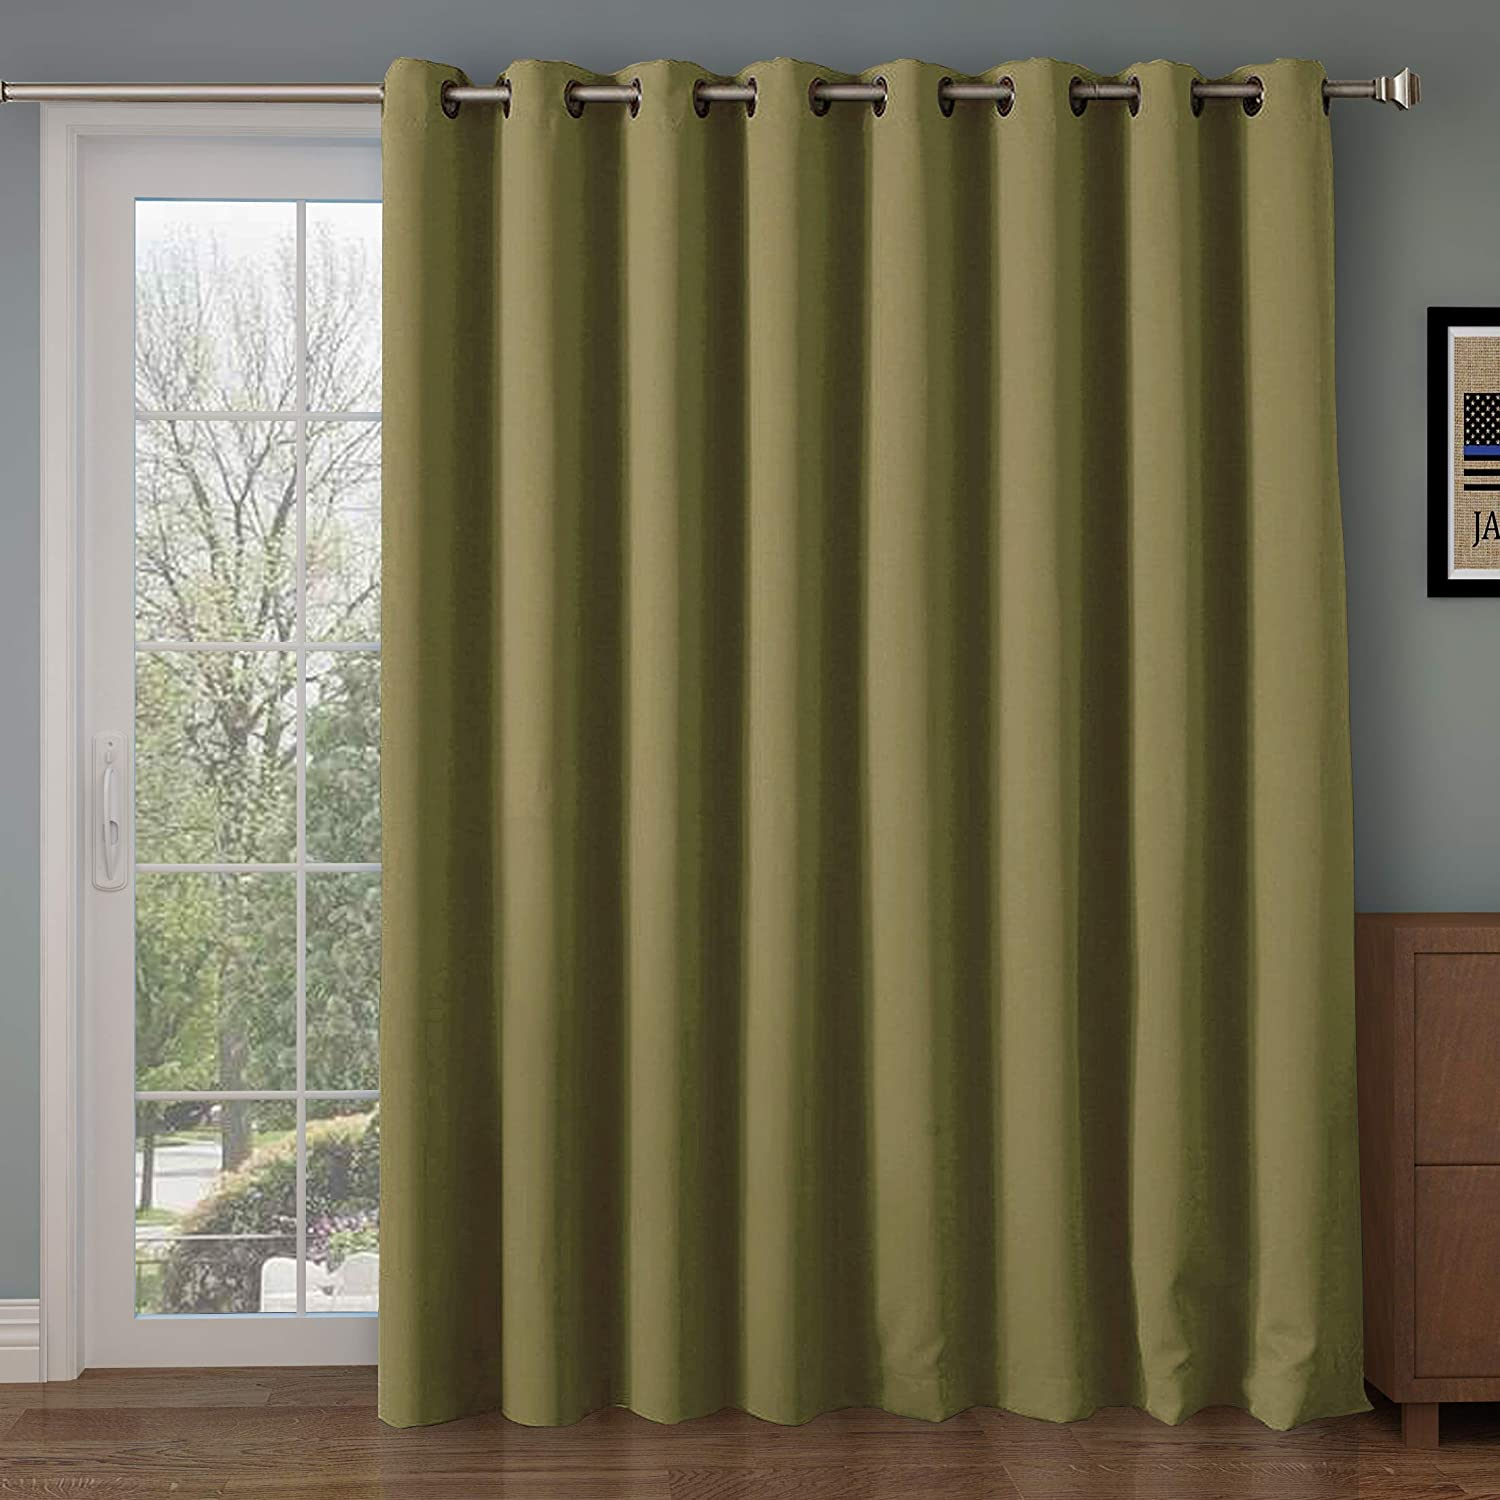 Amazon.com: Rose Home Fashion RHF Wide Thermal Blackout Patio Door Curtain  Panel, Sliding Door Curtains Antique Bronze Grommet Top 100W by 84L  Inches-Olive: ... - Amazon.com: Rose Home Fashion RHF Wide Thermal Blackout Patio Door